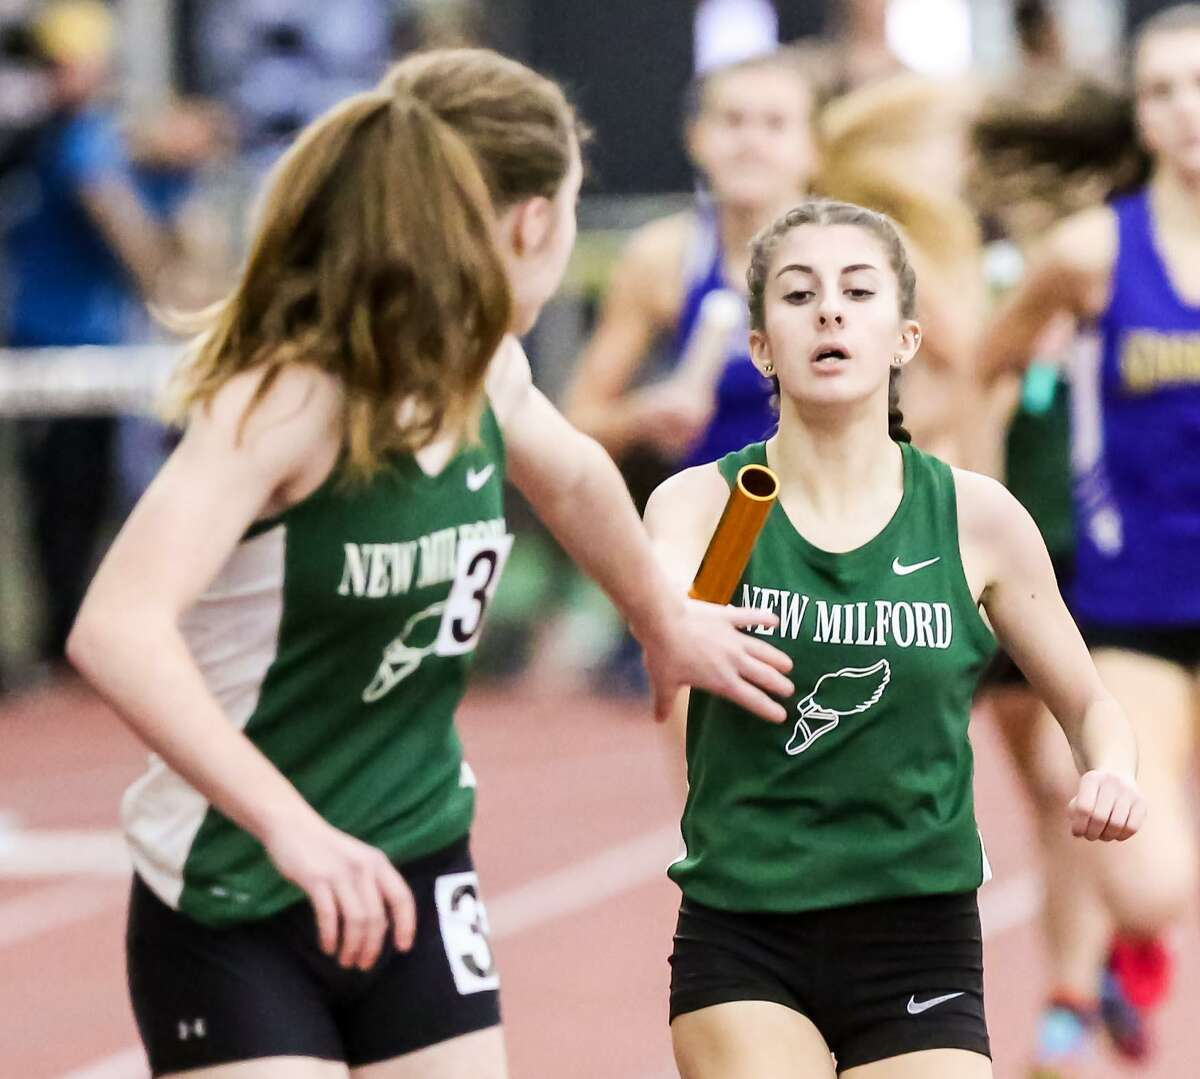 New Milford's Brooke Morabito hand's off the baton to Darcy Cook in the 4 x 800 Meter relay during the CIAC Class L state Championships in New Haven.